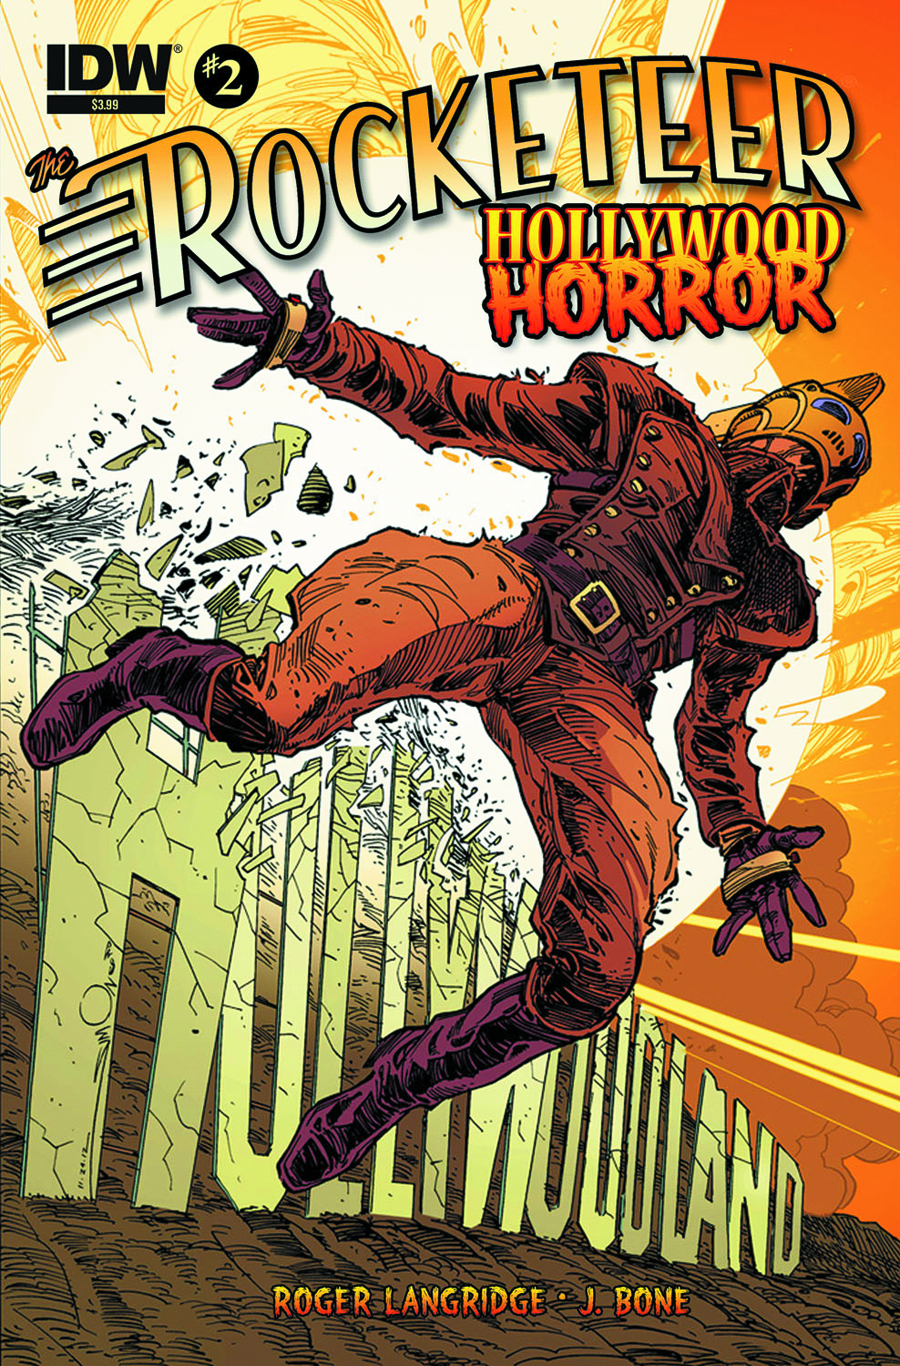 ROCKETEER HOLLYWOOD HORROR #2